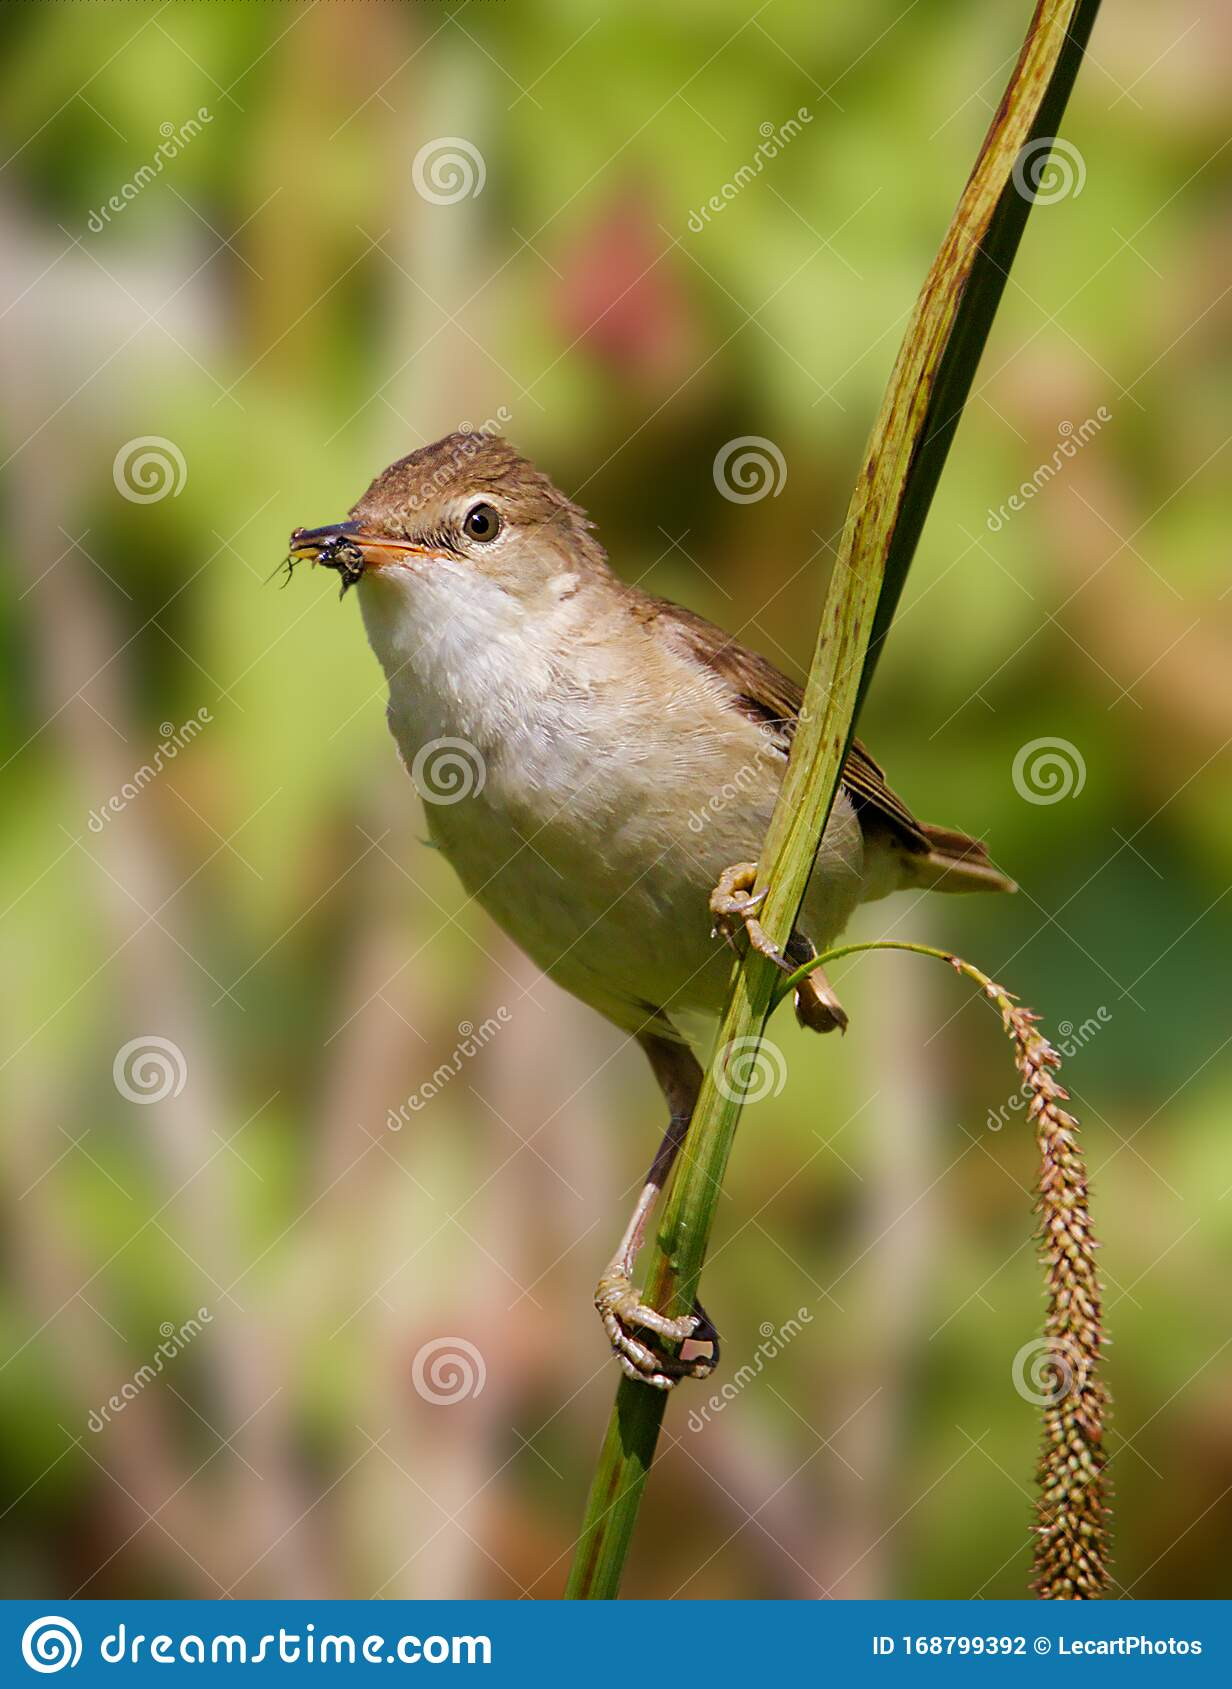 Reed Warbler With Insect On A Reed Stock Photo Image Of Natural Taken 168799392